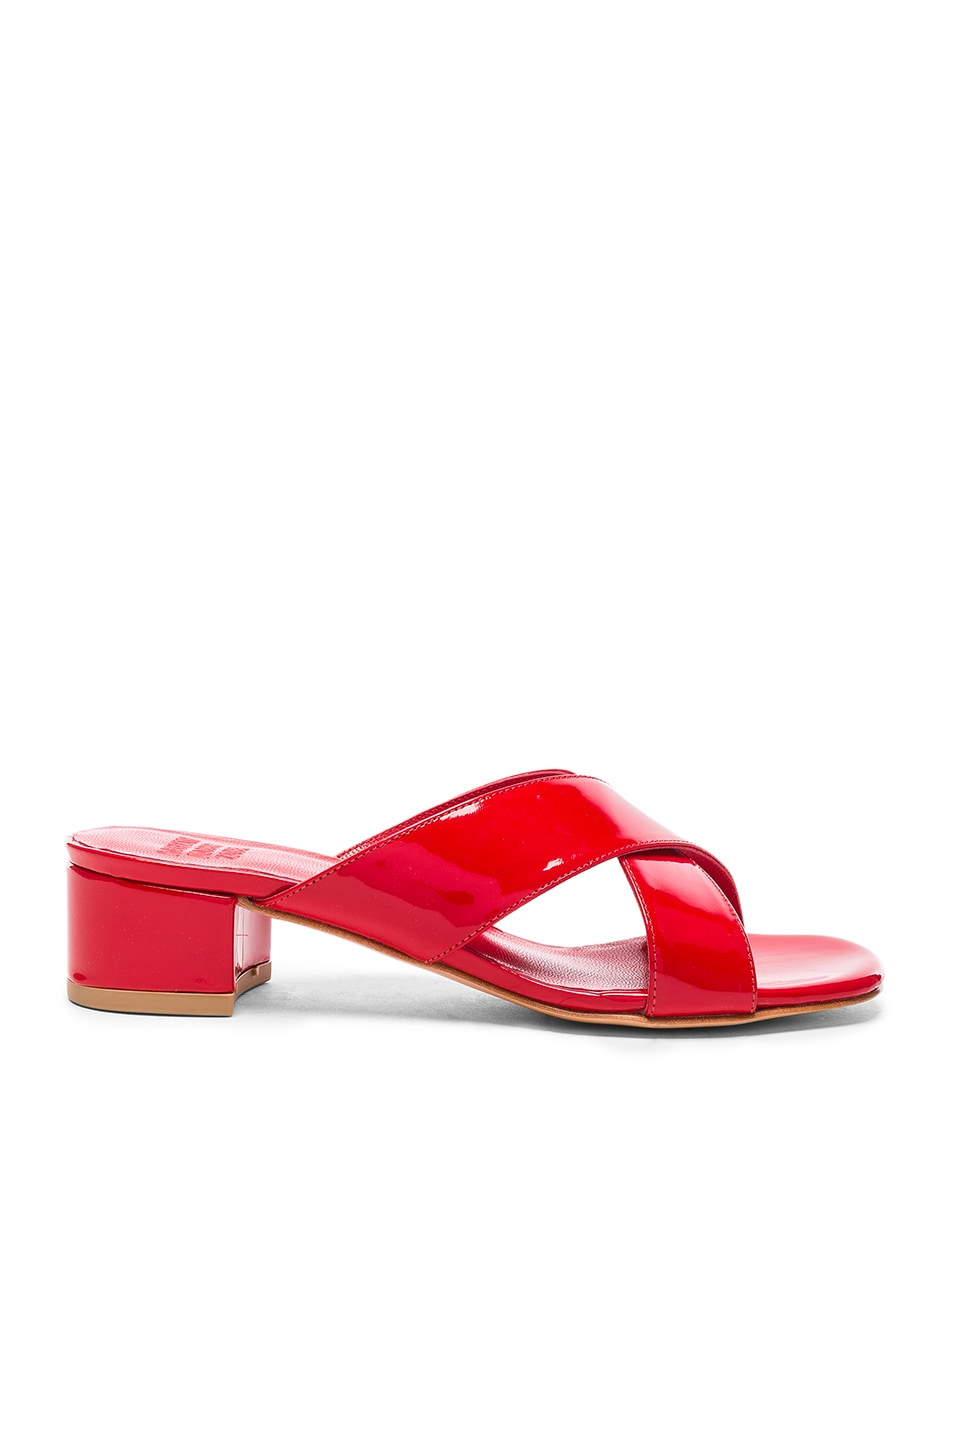 Image 1 of Maryam Nassir Zadeh Patent Leather Lauren Slide Heels in Poppy Patent